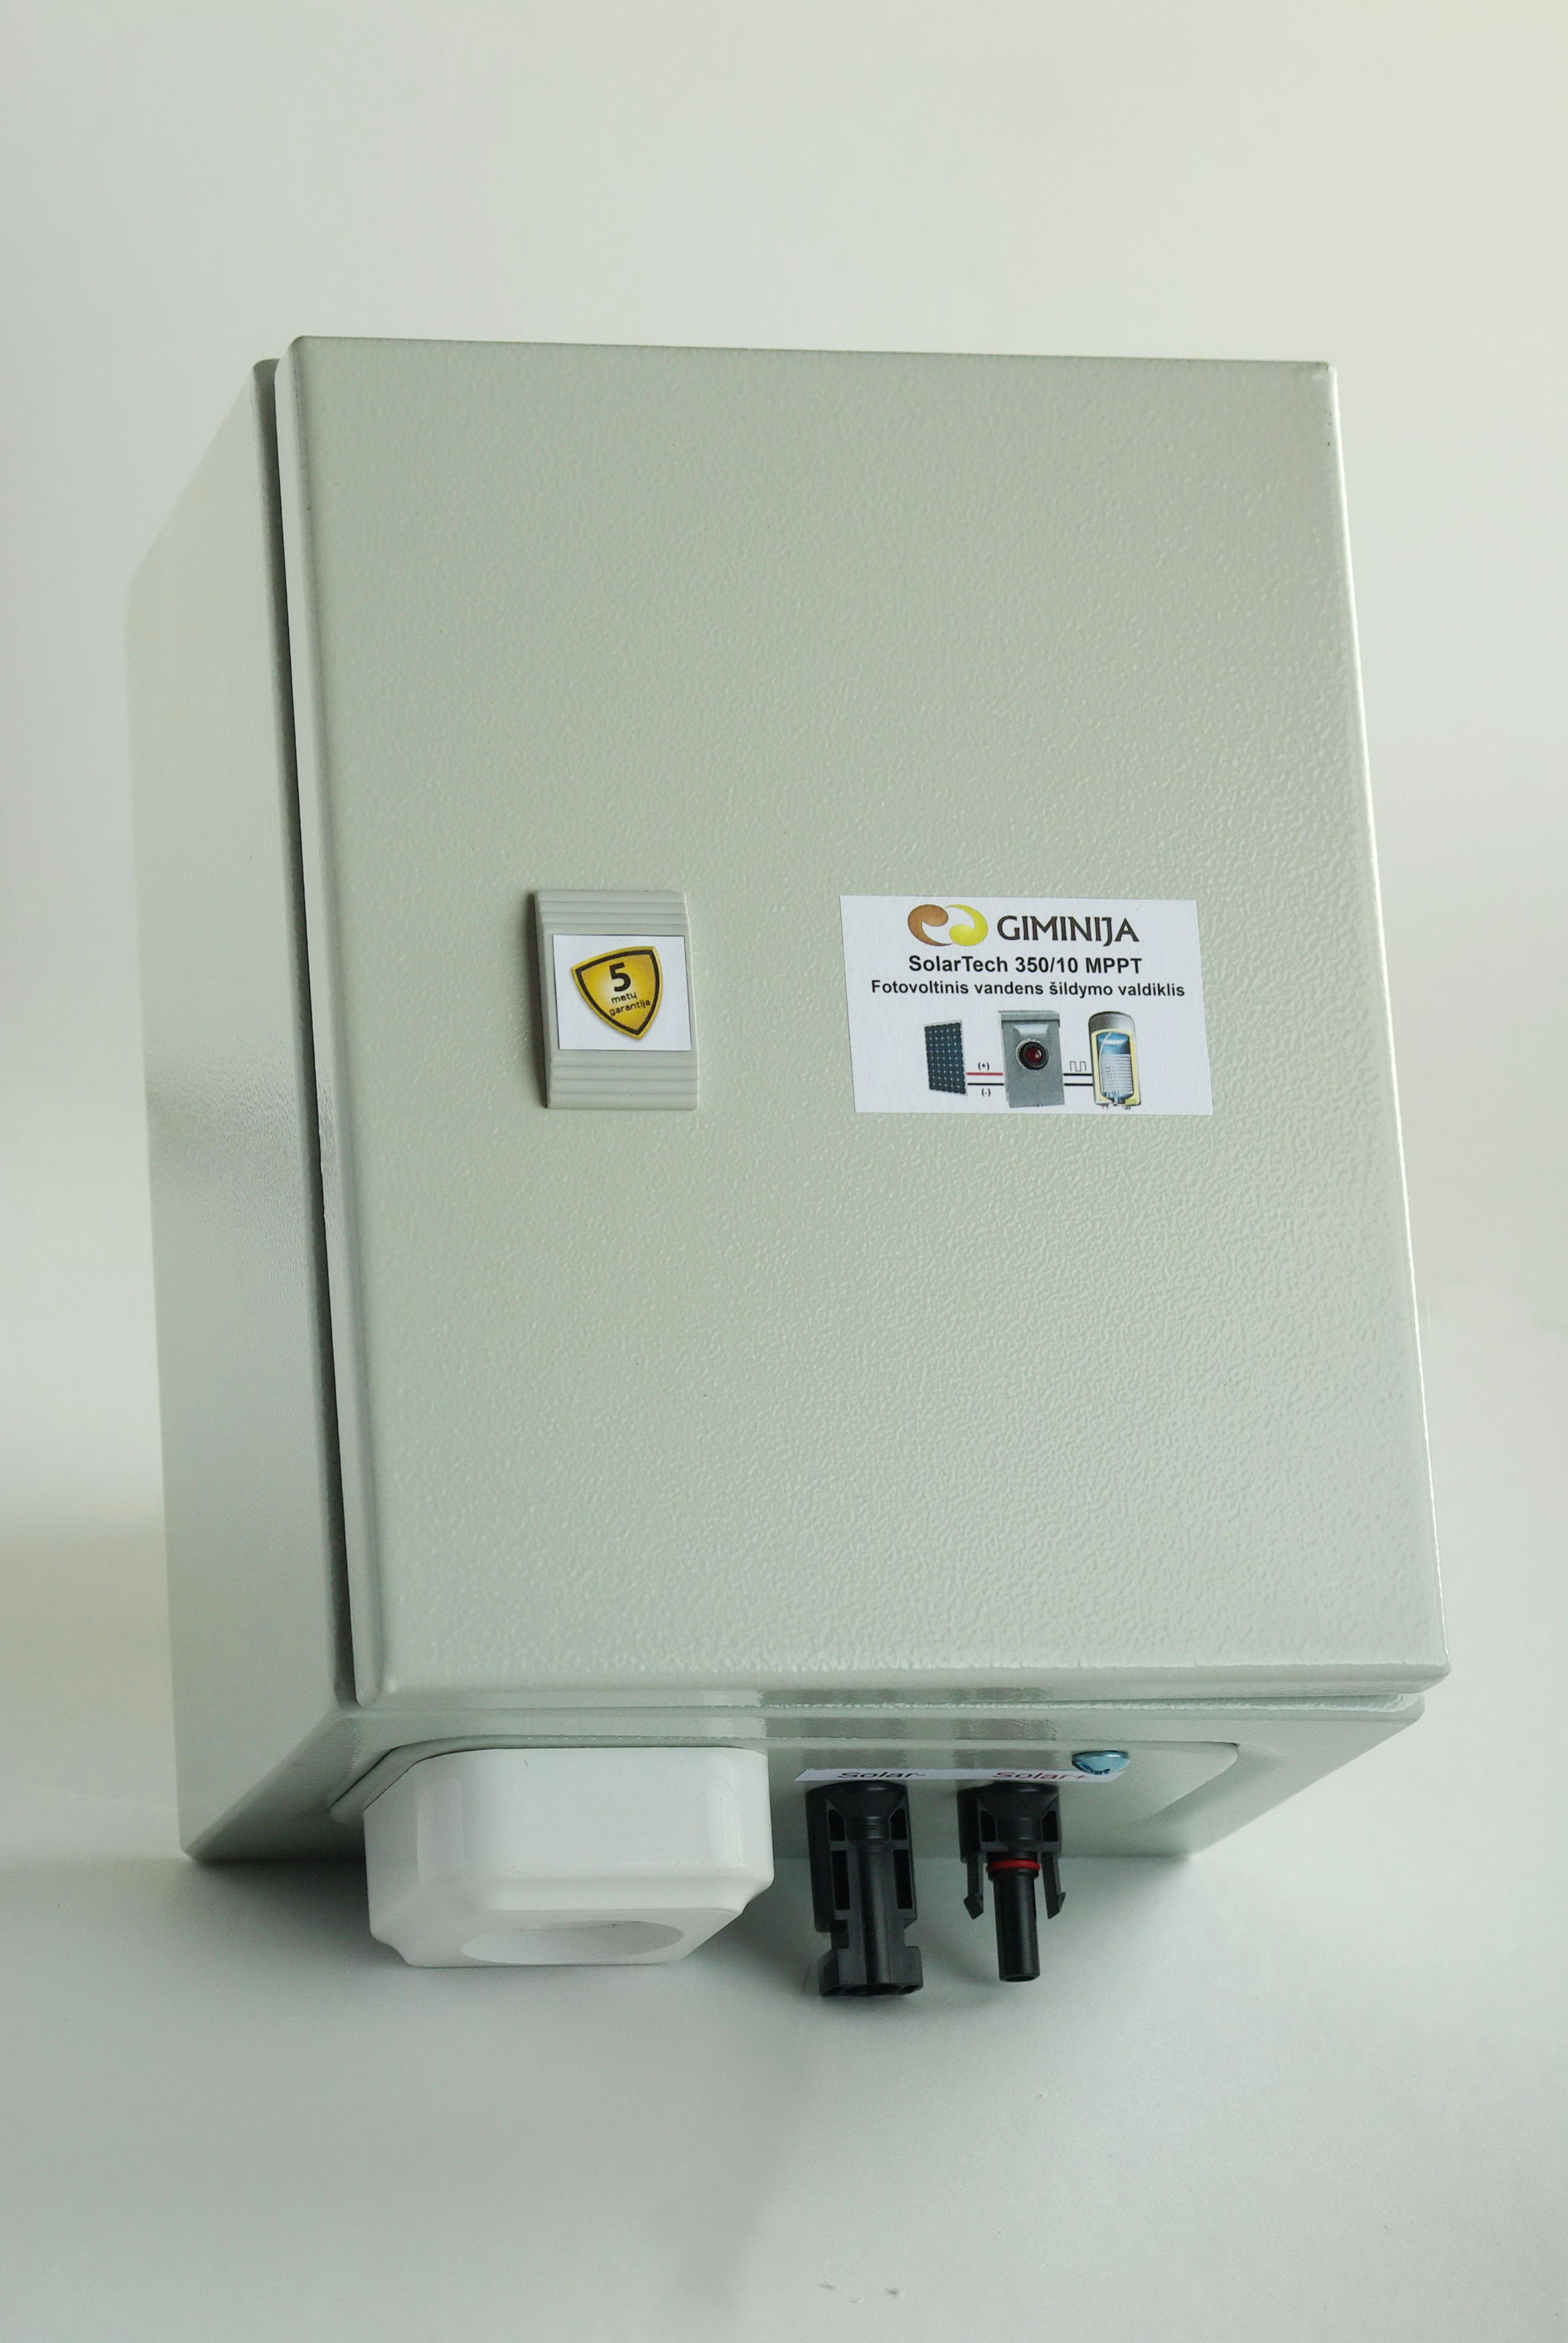 Our newest product - efficient solar PV water heating ...